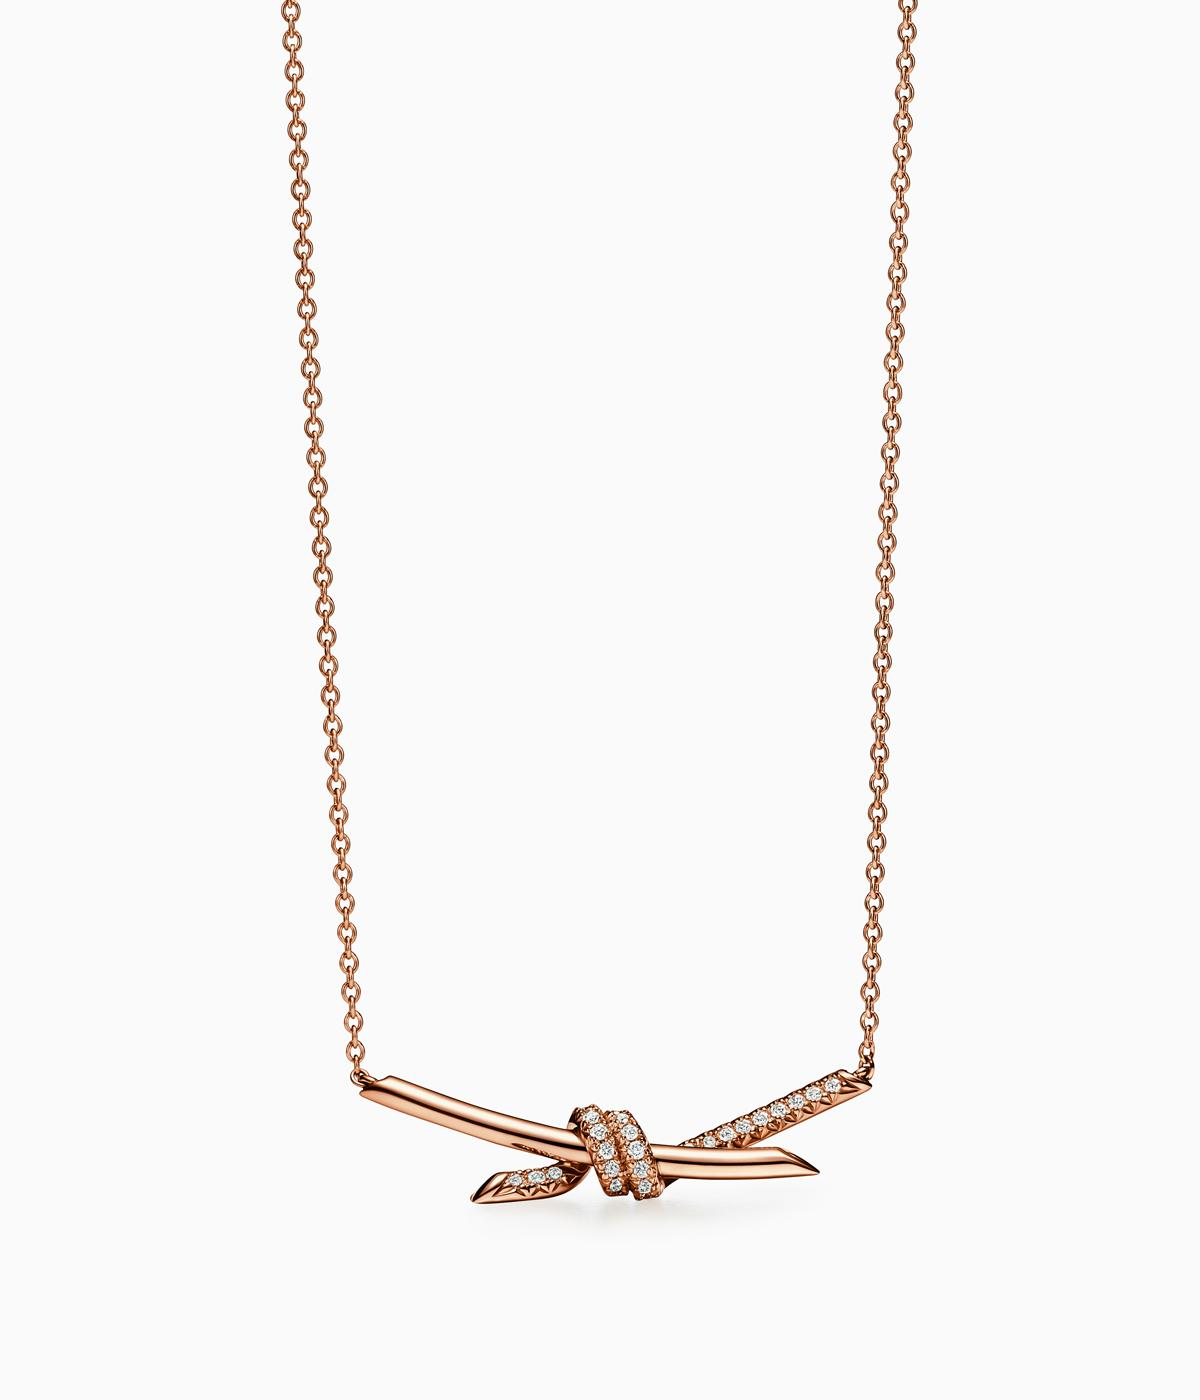 Tiffany gold bracelets and rings and necklaces